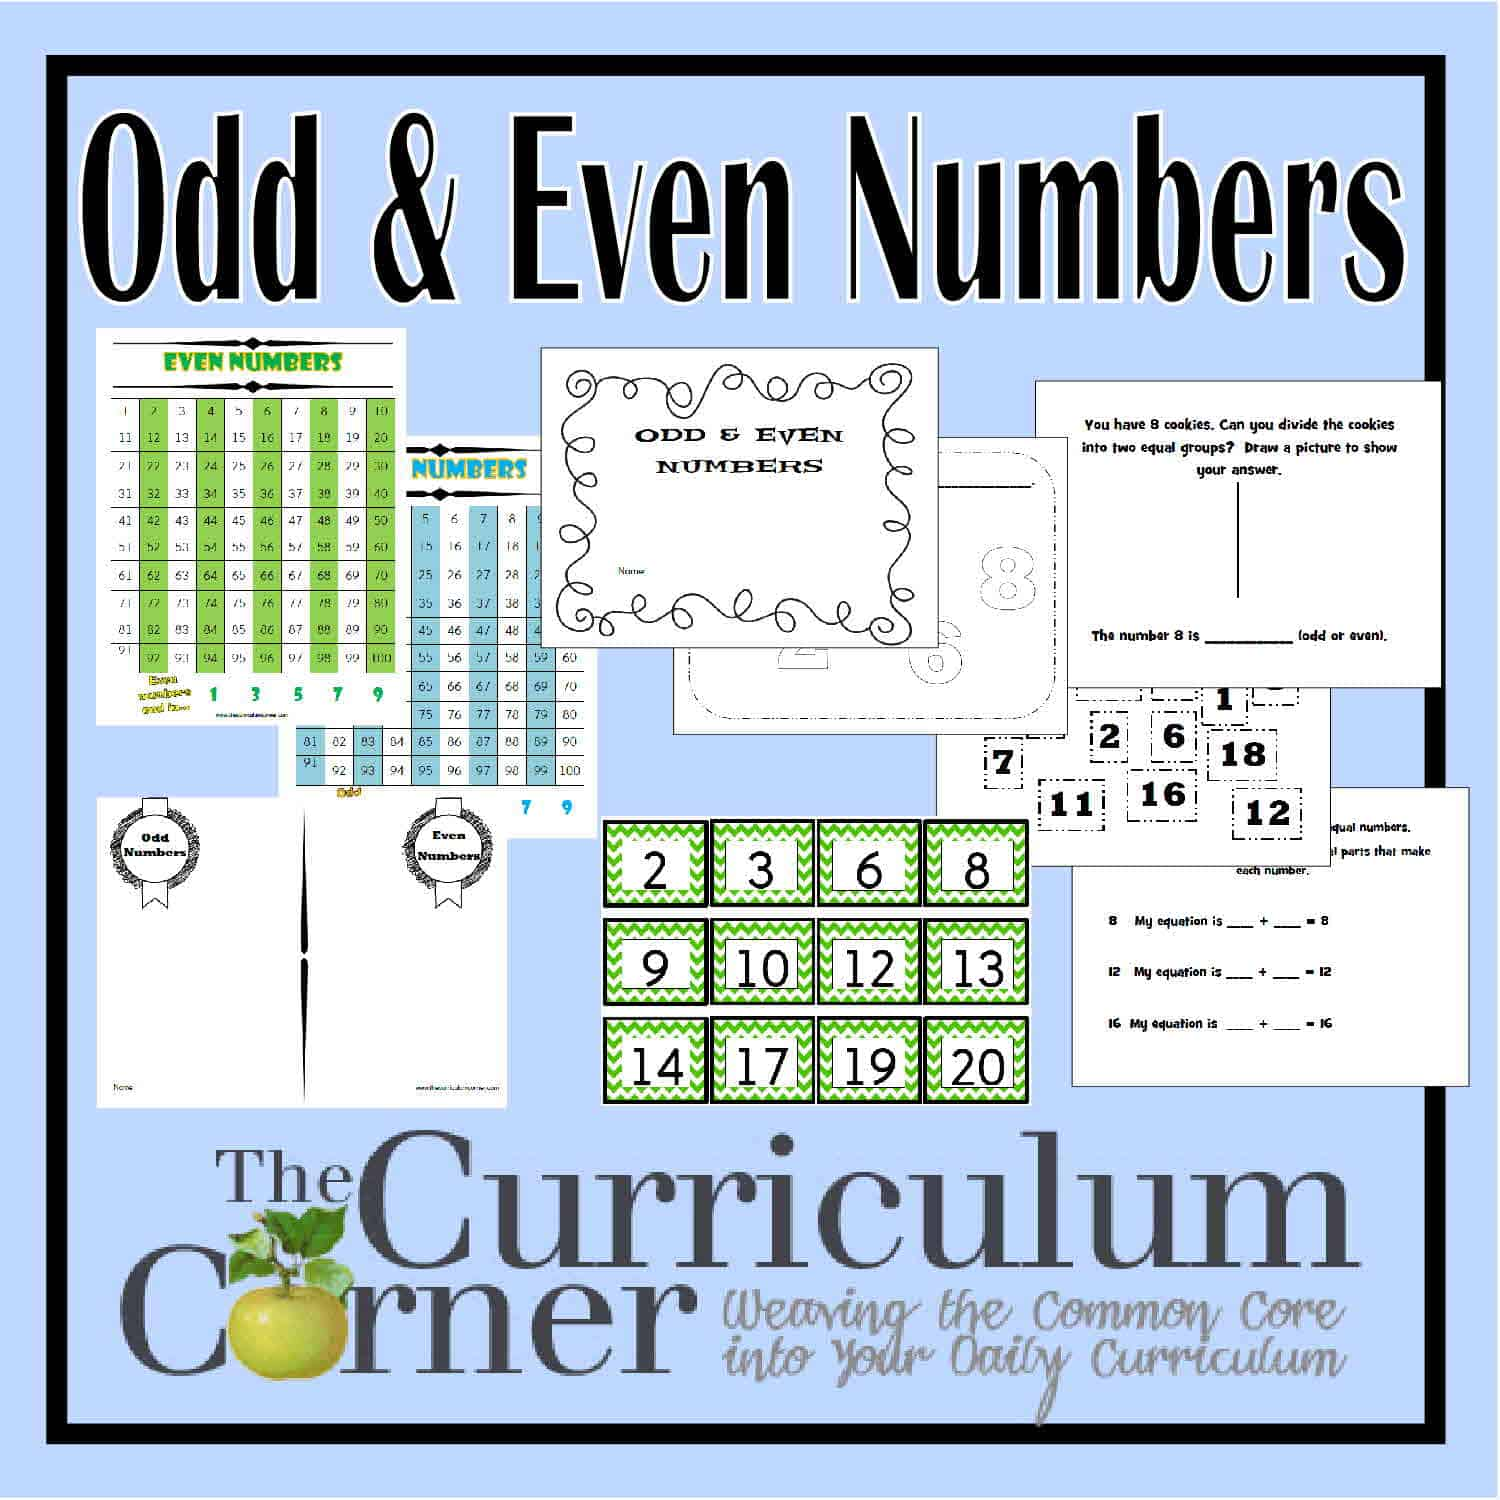 worksheet Even And Odd Worksheets For 2nd Grade odd and even numbers the curriculum corner 123